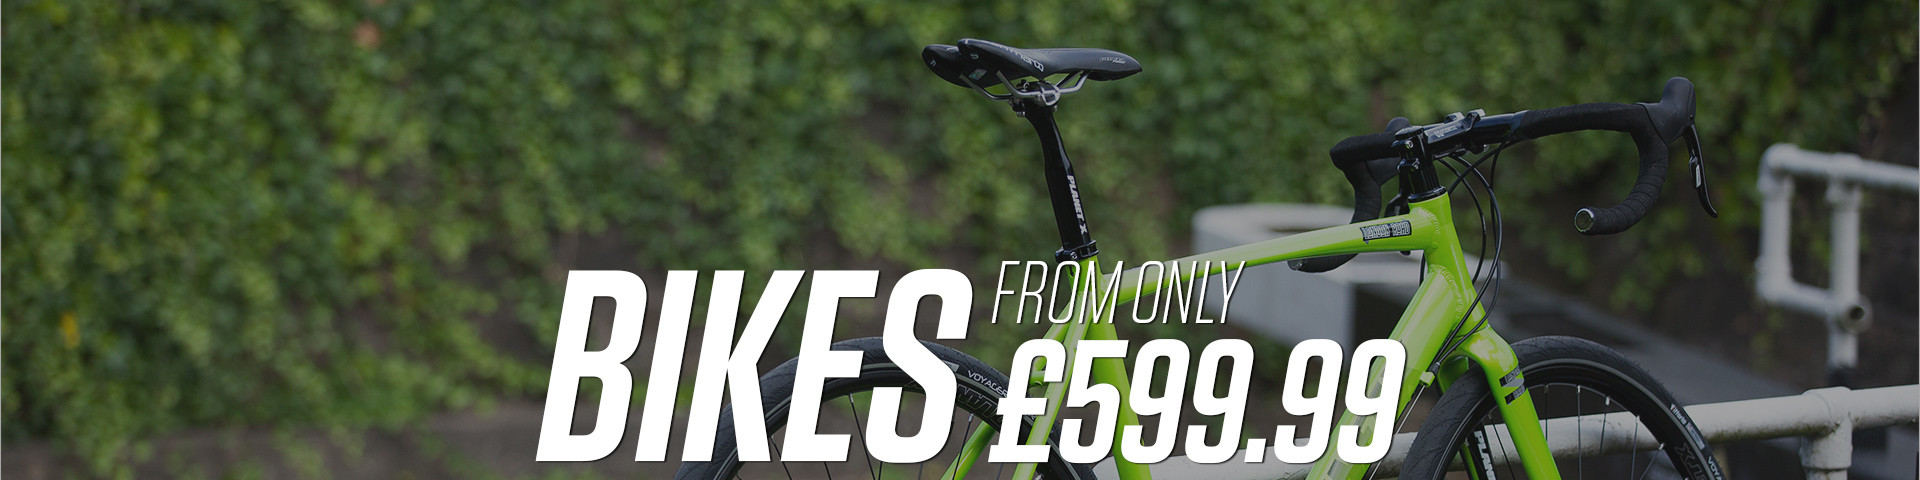 Bikes from 599.99